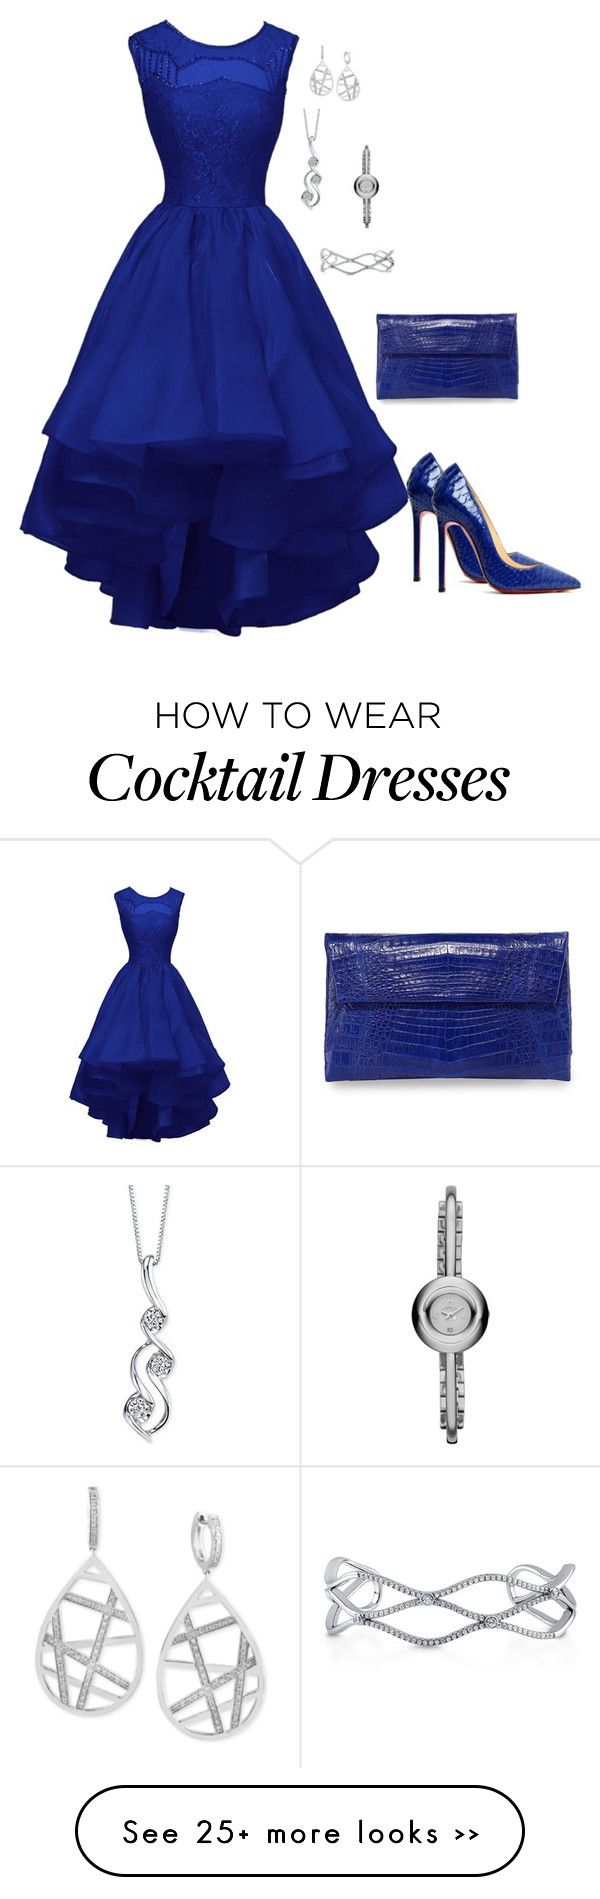 """FDWN"" by charactertickles on Polyvore featuring Christian Louboutin, Nancy Gonzalez, BERRICLE, Effy Jewelry, Sirena and Marc by Marc Jacobs"